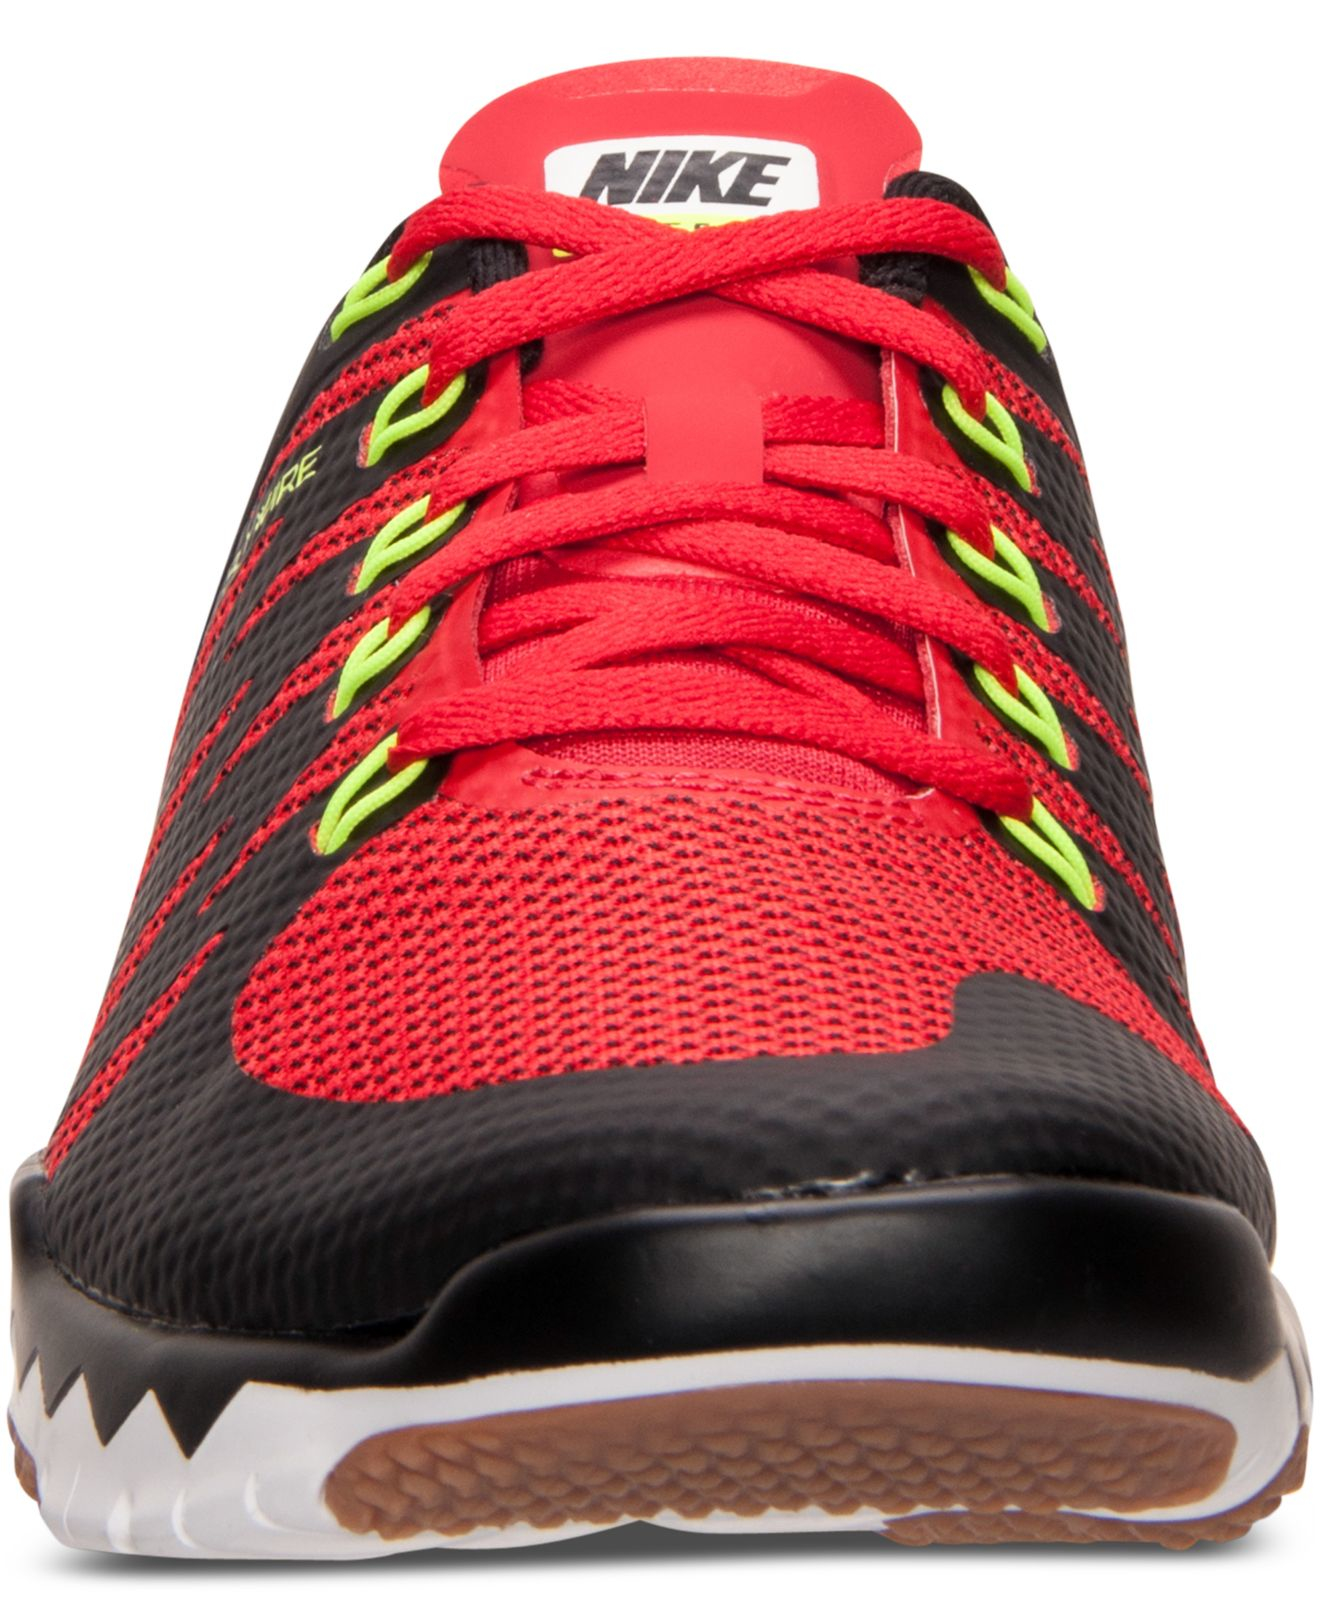 567ccd6c51fb ... low price lyst nike mens free trainer 5.0 v6 training sneakers from  finish f206c c9f42